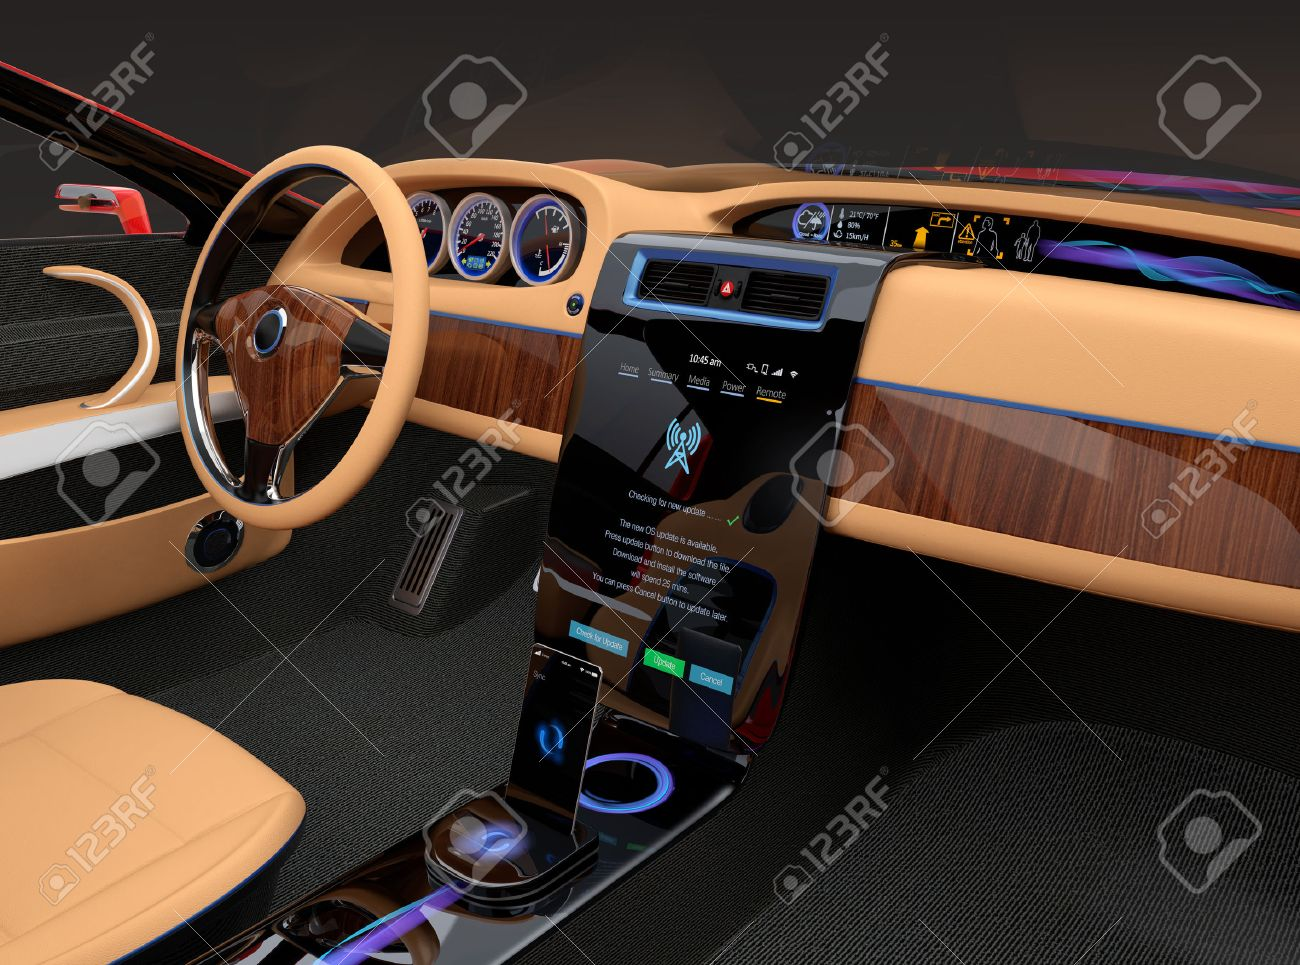 Stock Photo   Stylish Electric Car Interior With Luxury Wood Pattern  Decoration. User Using Touch Screen To Do Some Setup Work. Original Design.